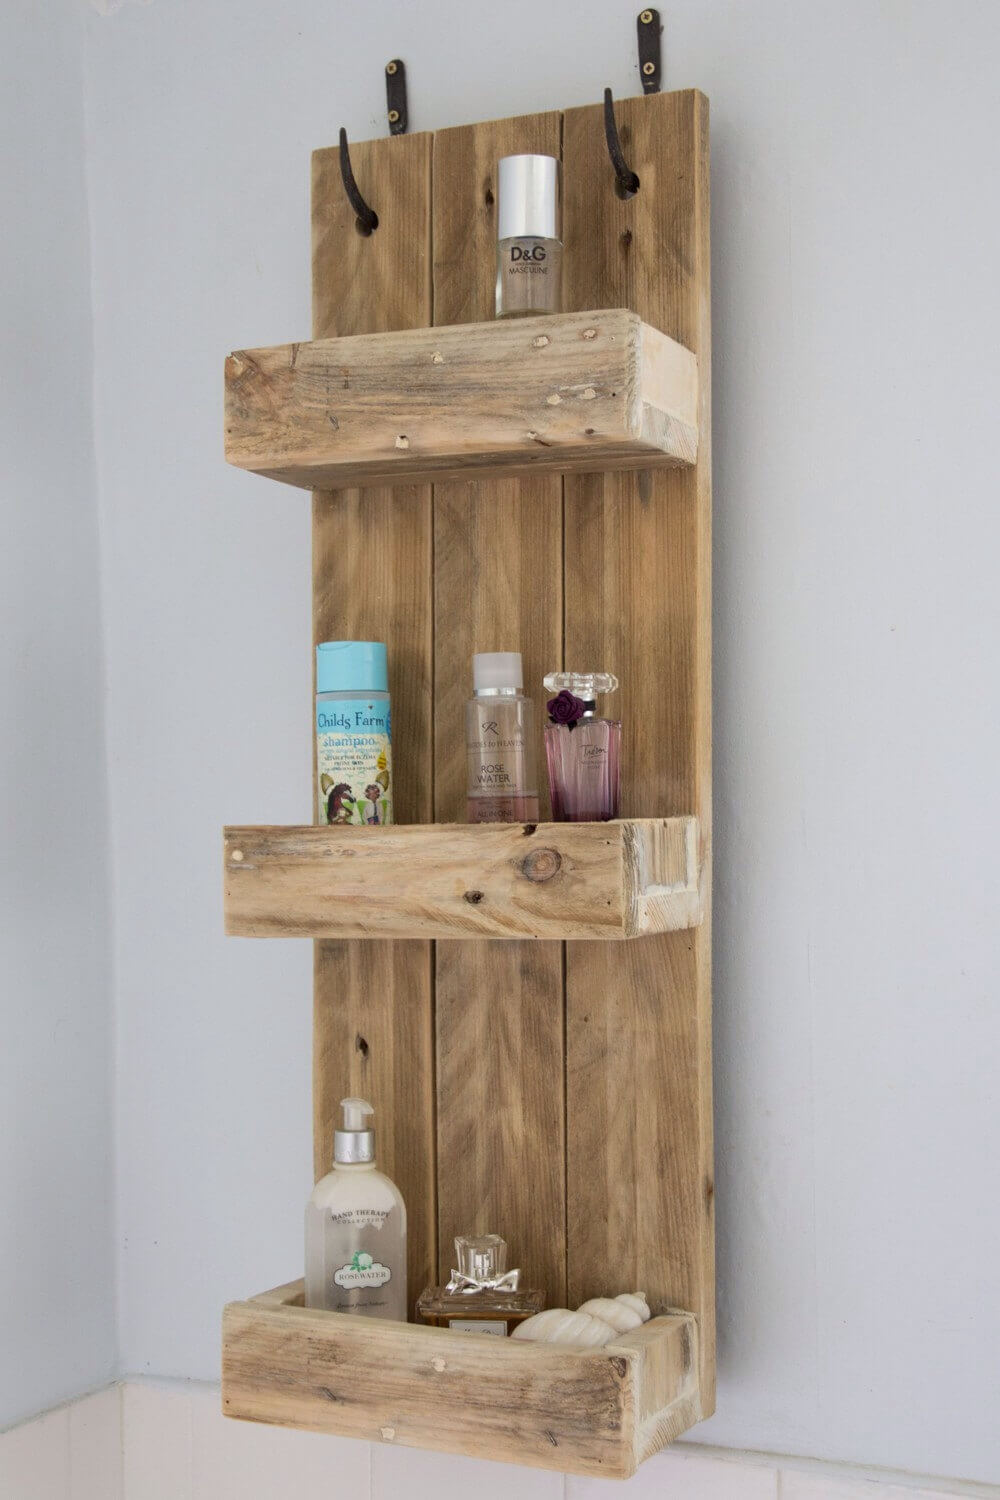 25 Best Bathroom Pallet Projects Ideas And Designs For 2019